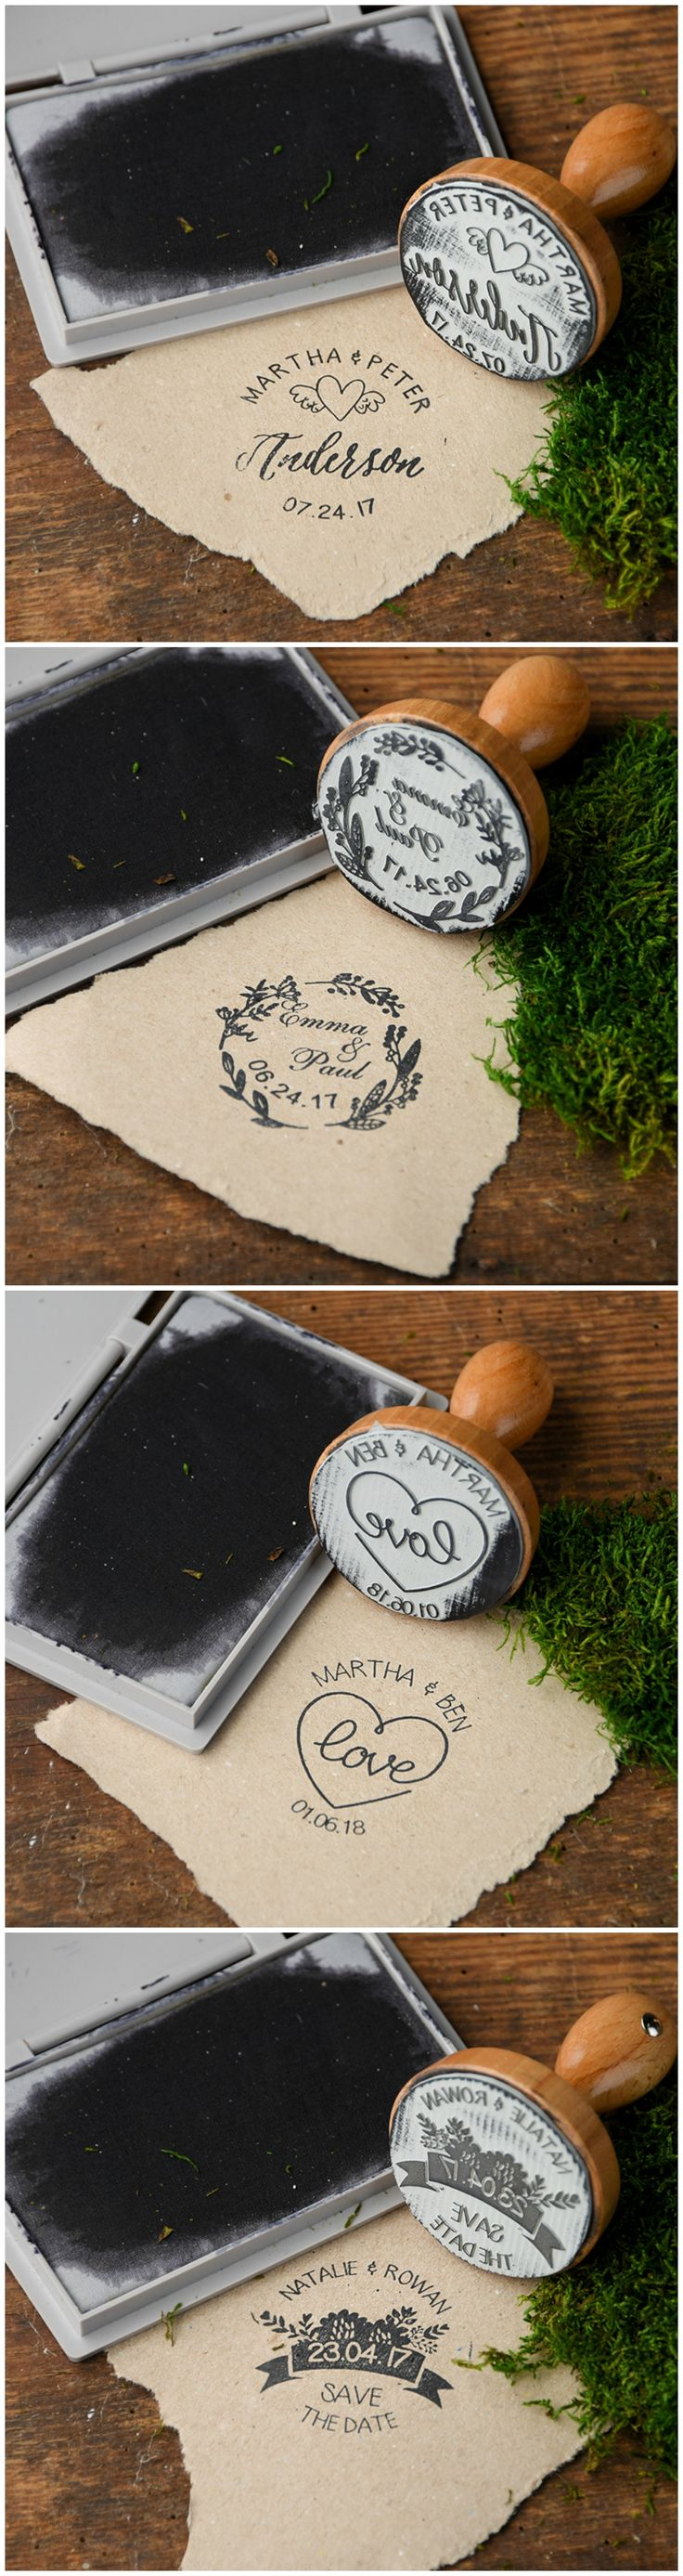 Wedding Wooden Custom Stamps #weddingideas #creative #weddingstamp #woodenstamp #rustic #eco #lovely #DIY #weddingprep #weddingpreparing #custom